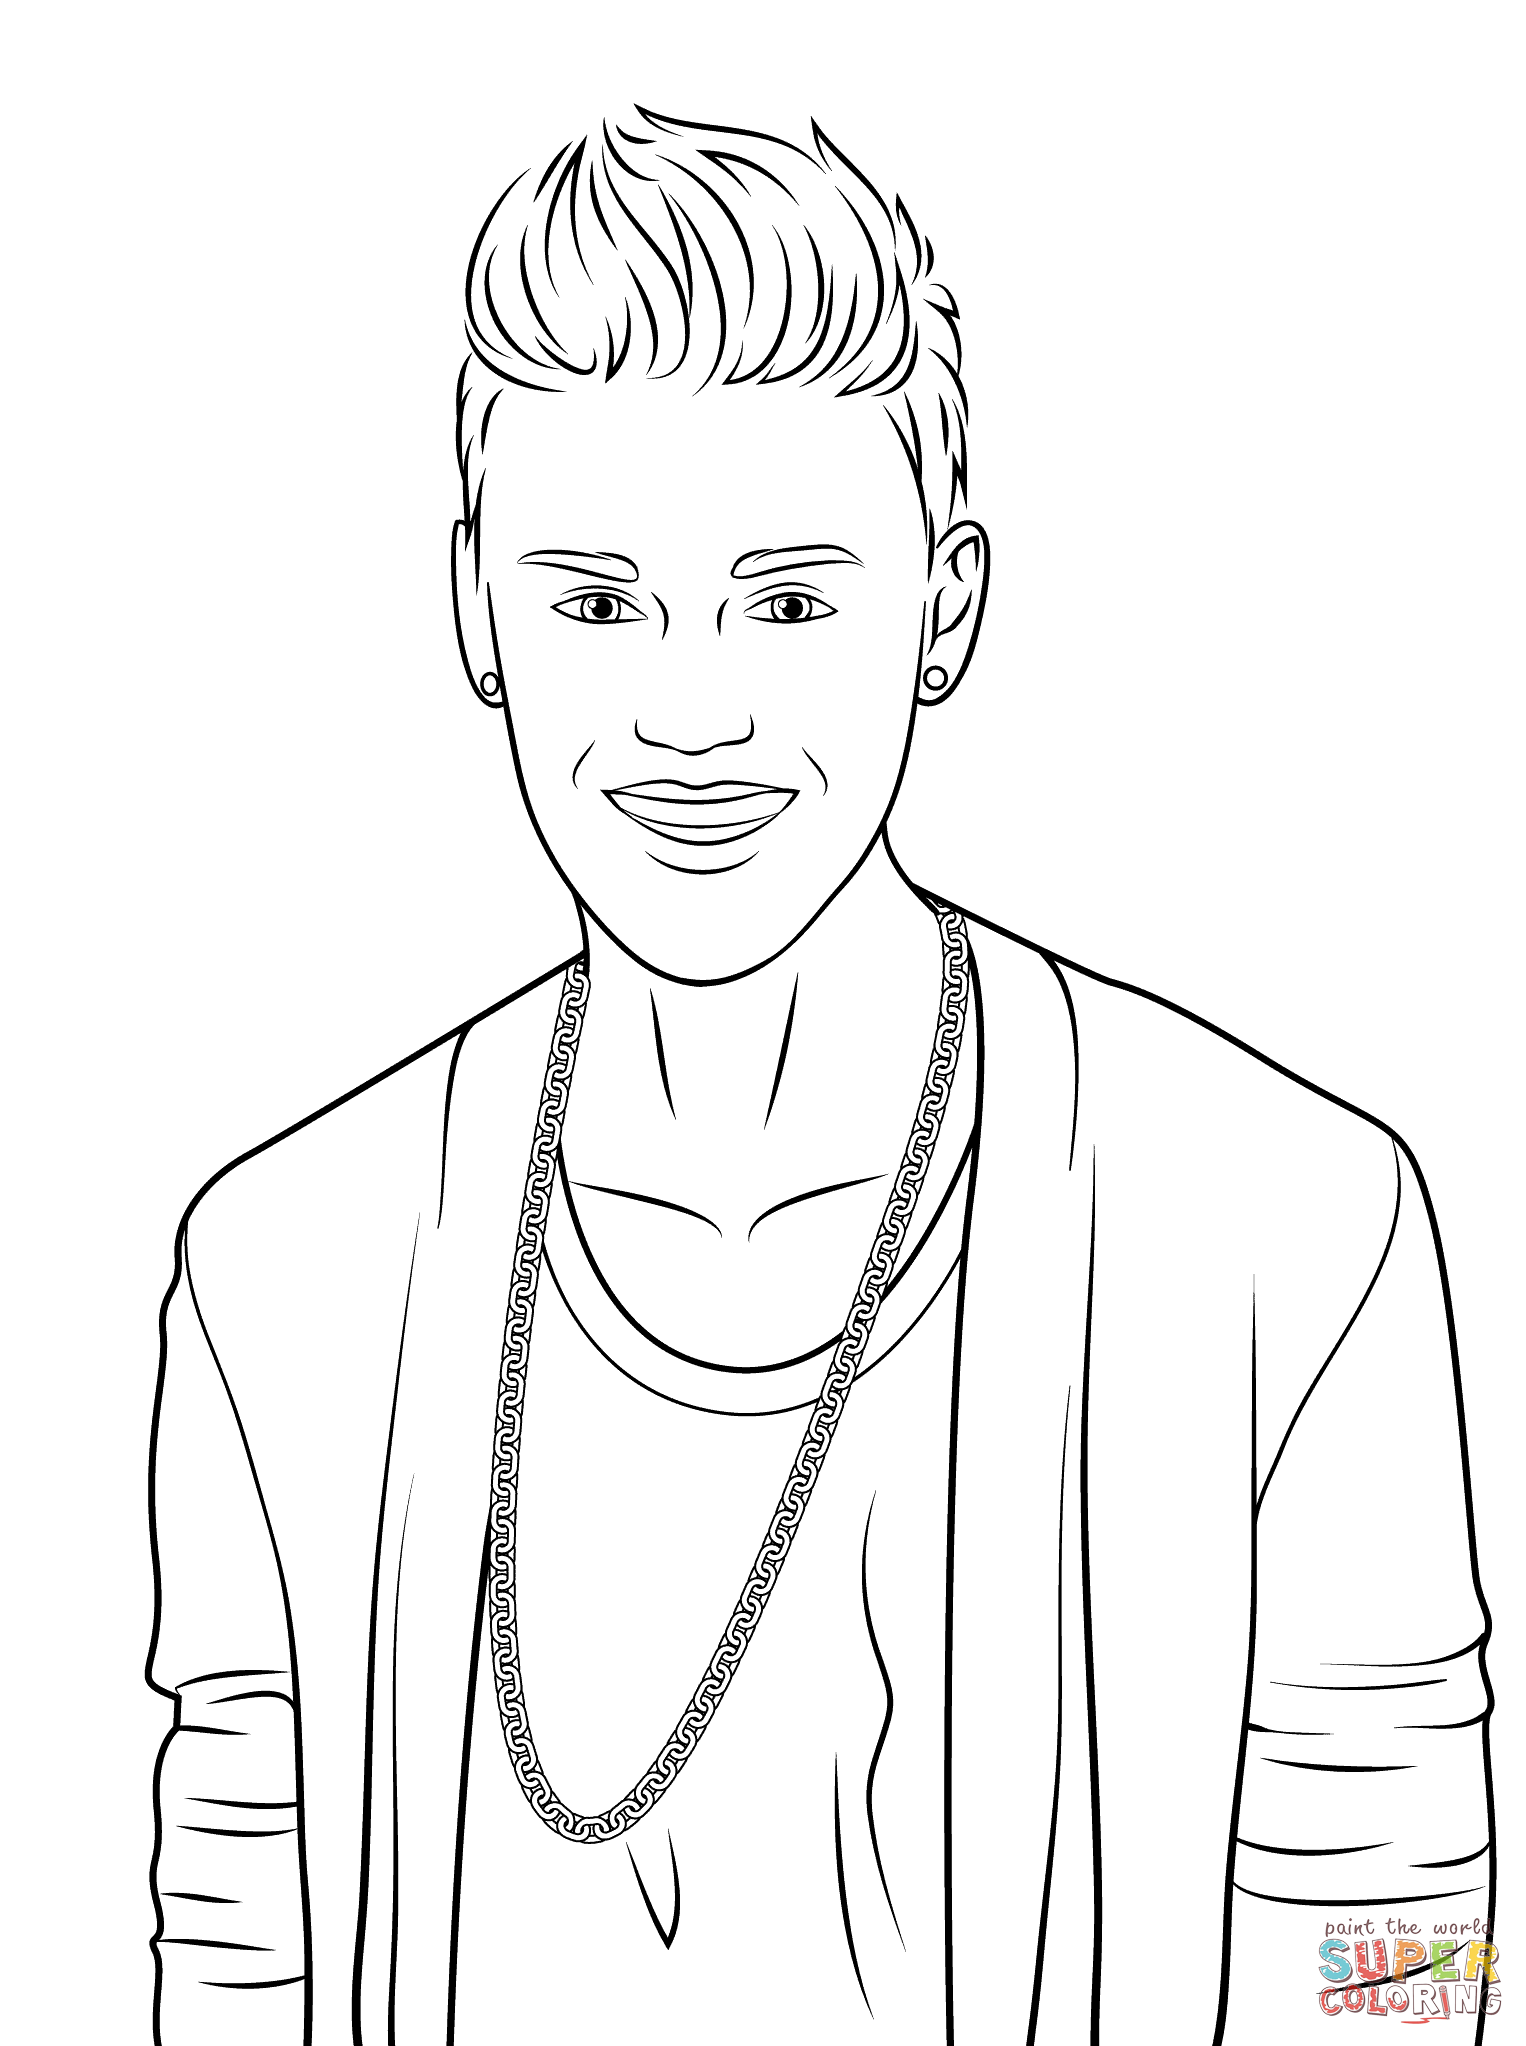 Justin Bieber Coloring Page Free Printable Coloring Pages